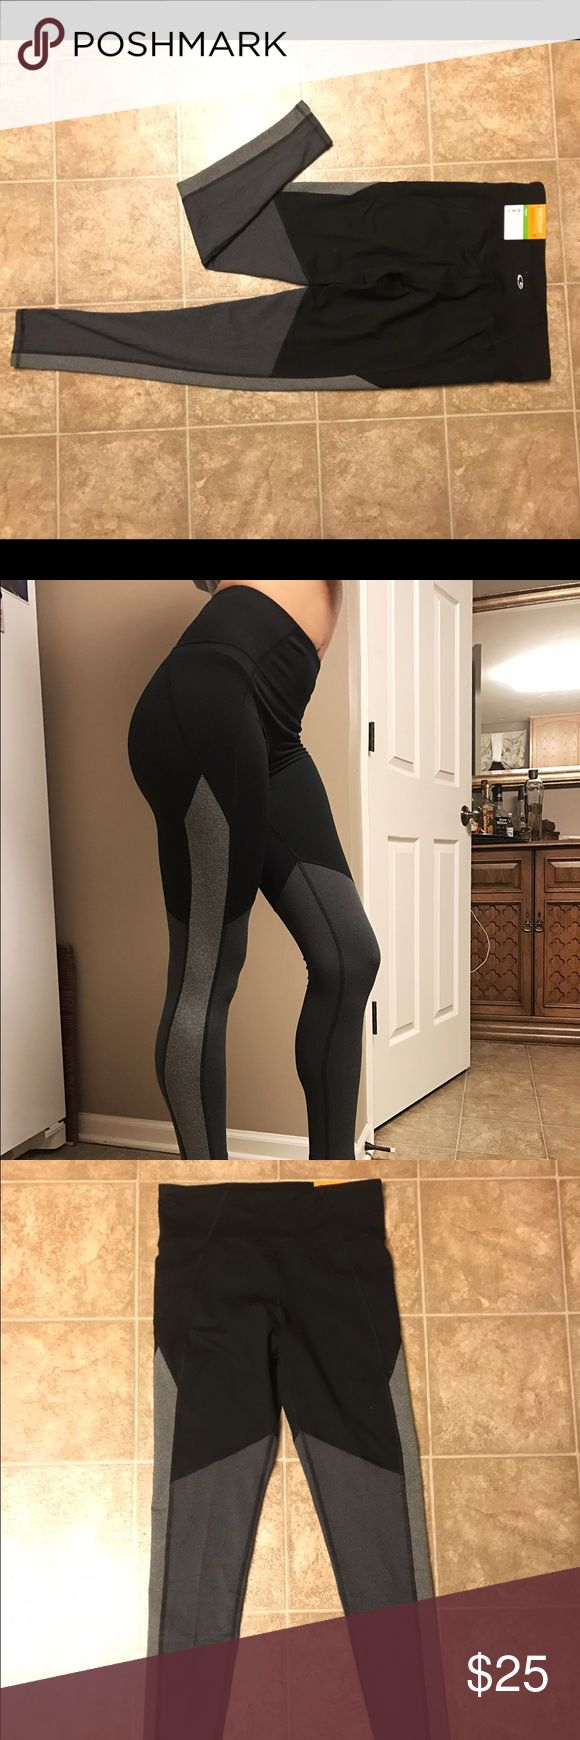 Black and gray athletic-type leggings Brand new, M, very durable high-waisted leggings ! Champion Pants Leggings